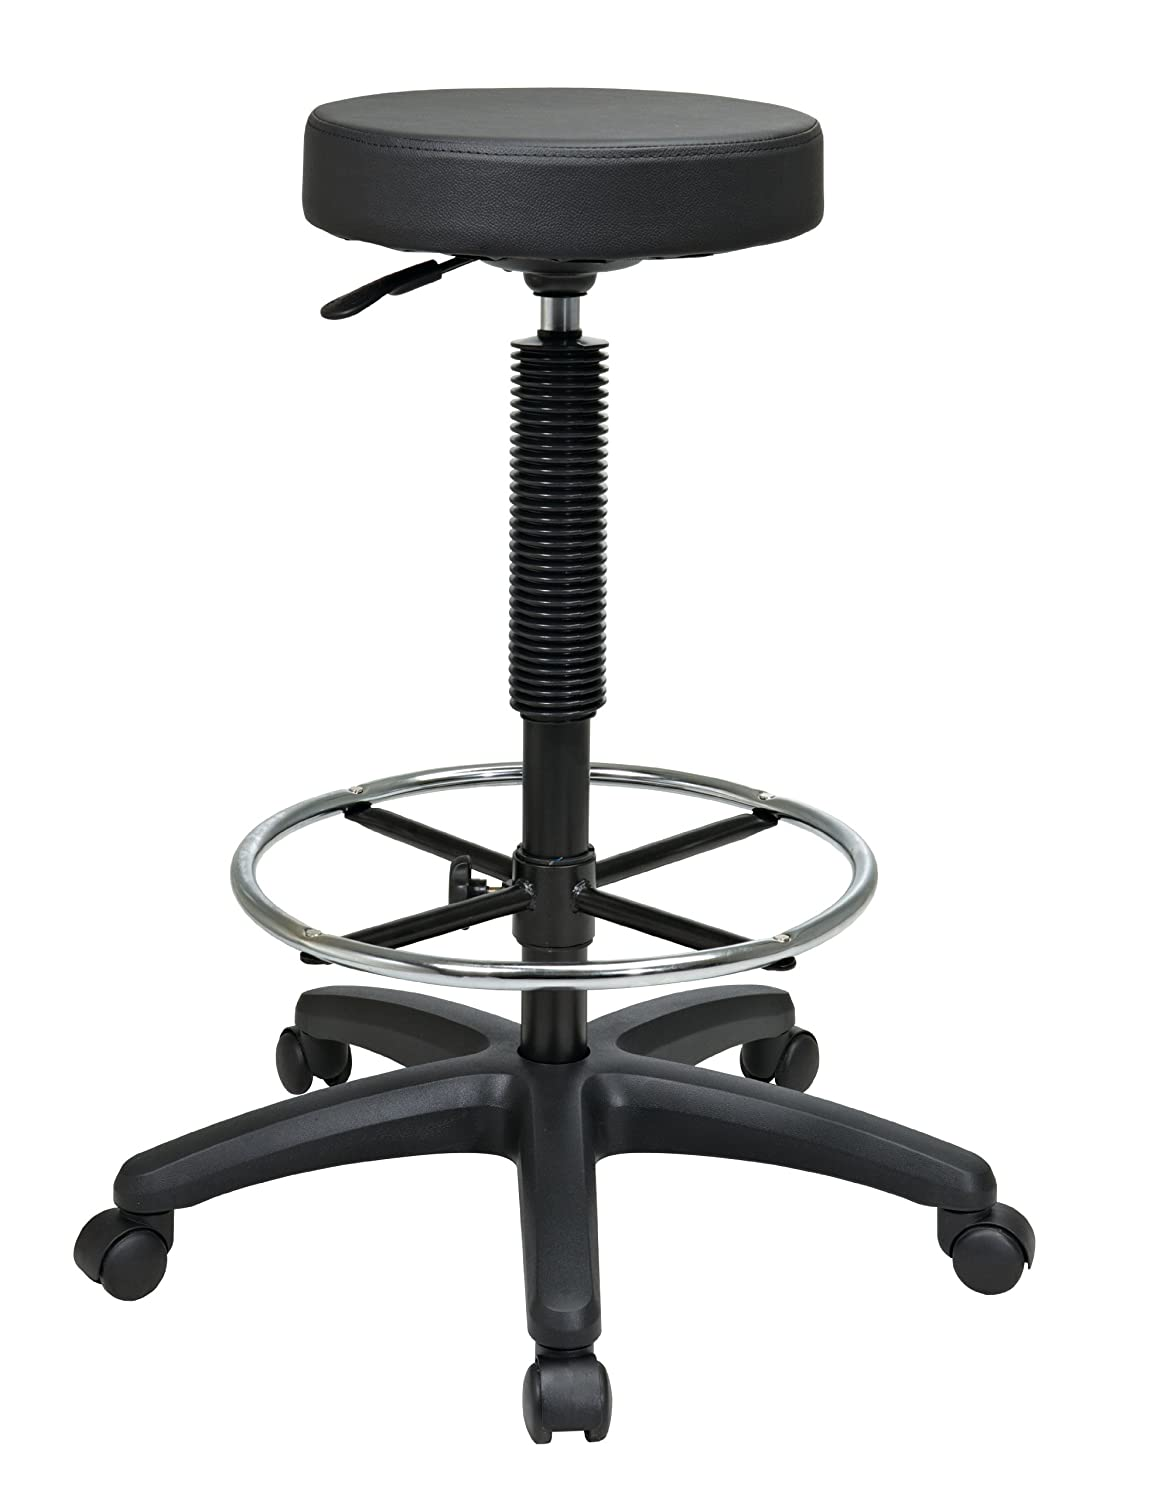 Amazon com  Office Star Thick Padded Vinyl Seat Backless Drafting Stool  with Adjustable Footring  Black  23 33 Inch Heigh Adjustable  Kitchen    DiningAmazon com  Office Star Thick Padded Vinyl Seat Backless Drafting  . Office Star Height Adjustable Drafting Chair With Footring. Home Design Ideas